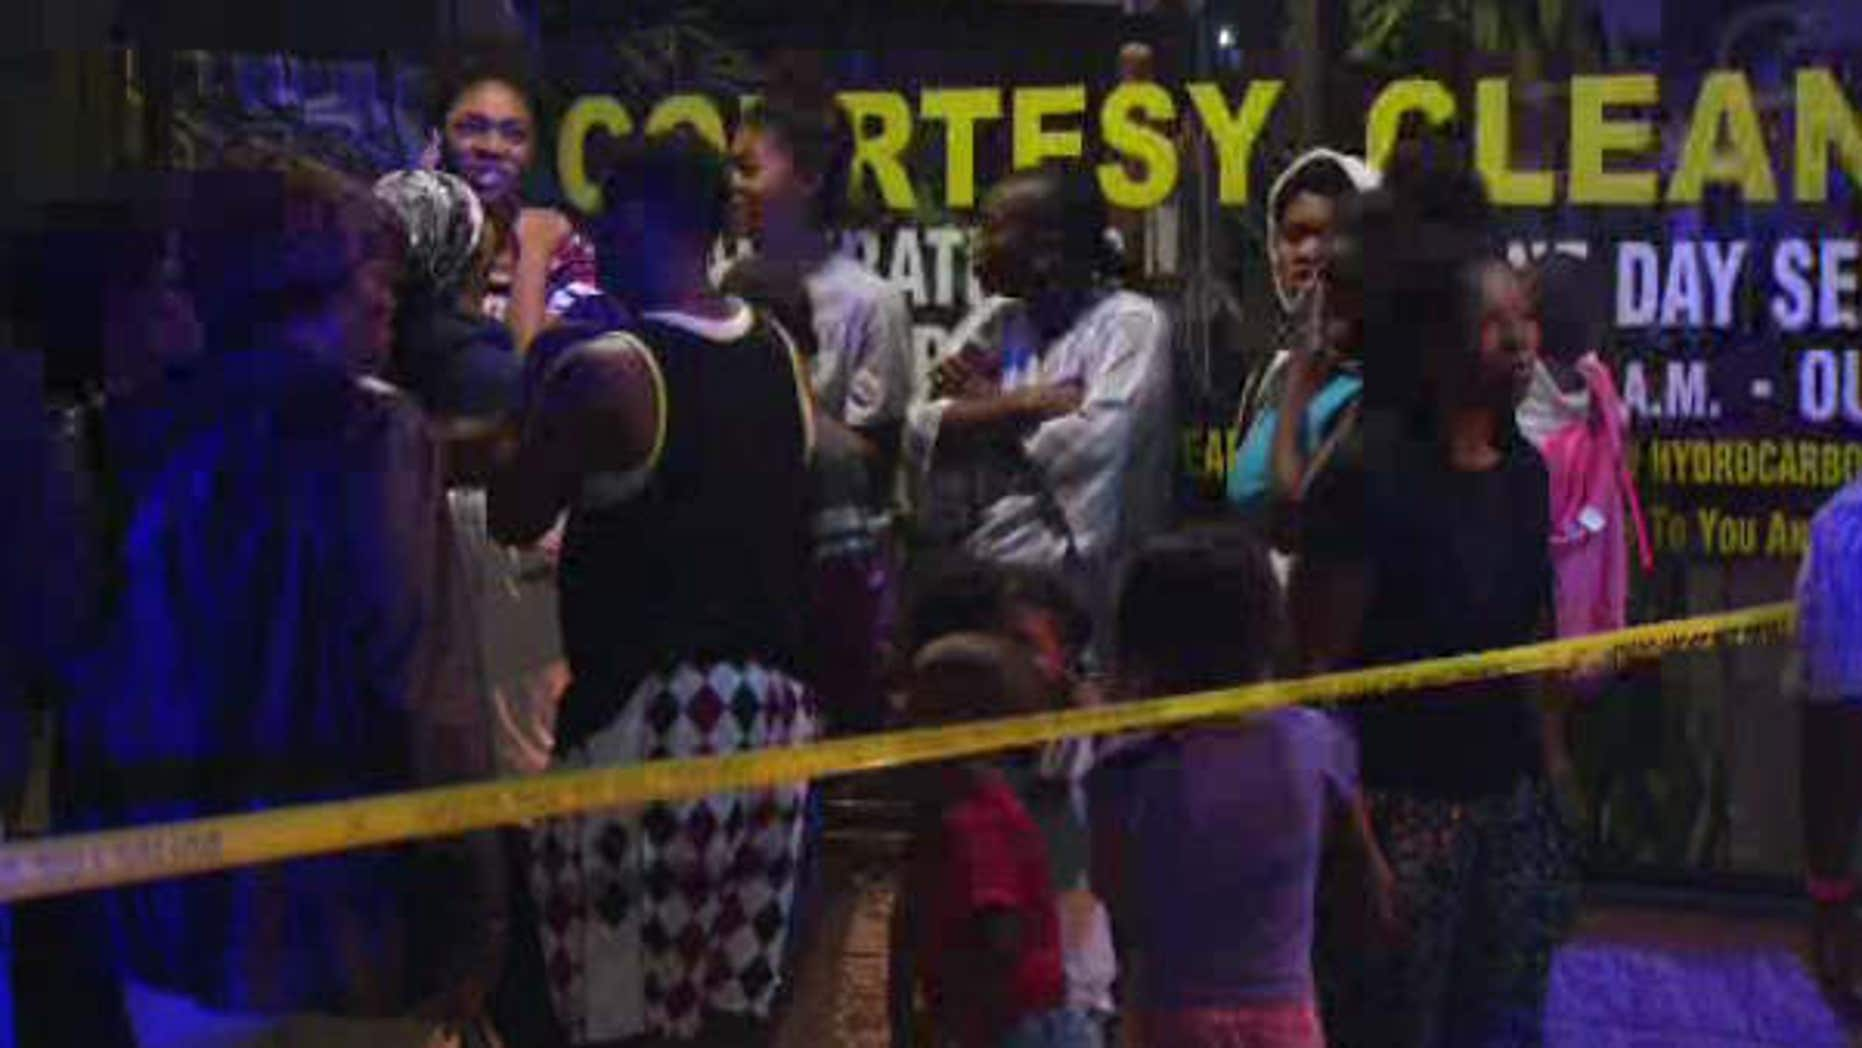 Aug. 7, 2015: In this image made from a video provided by KNBC-TV, relatives of a suspected attacker arrive at the scene after a fatal police shooting in Long Beach, Calif.